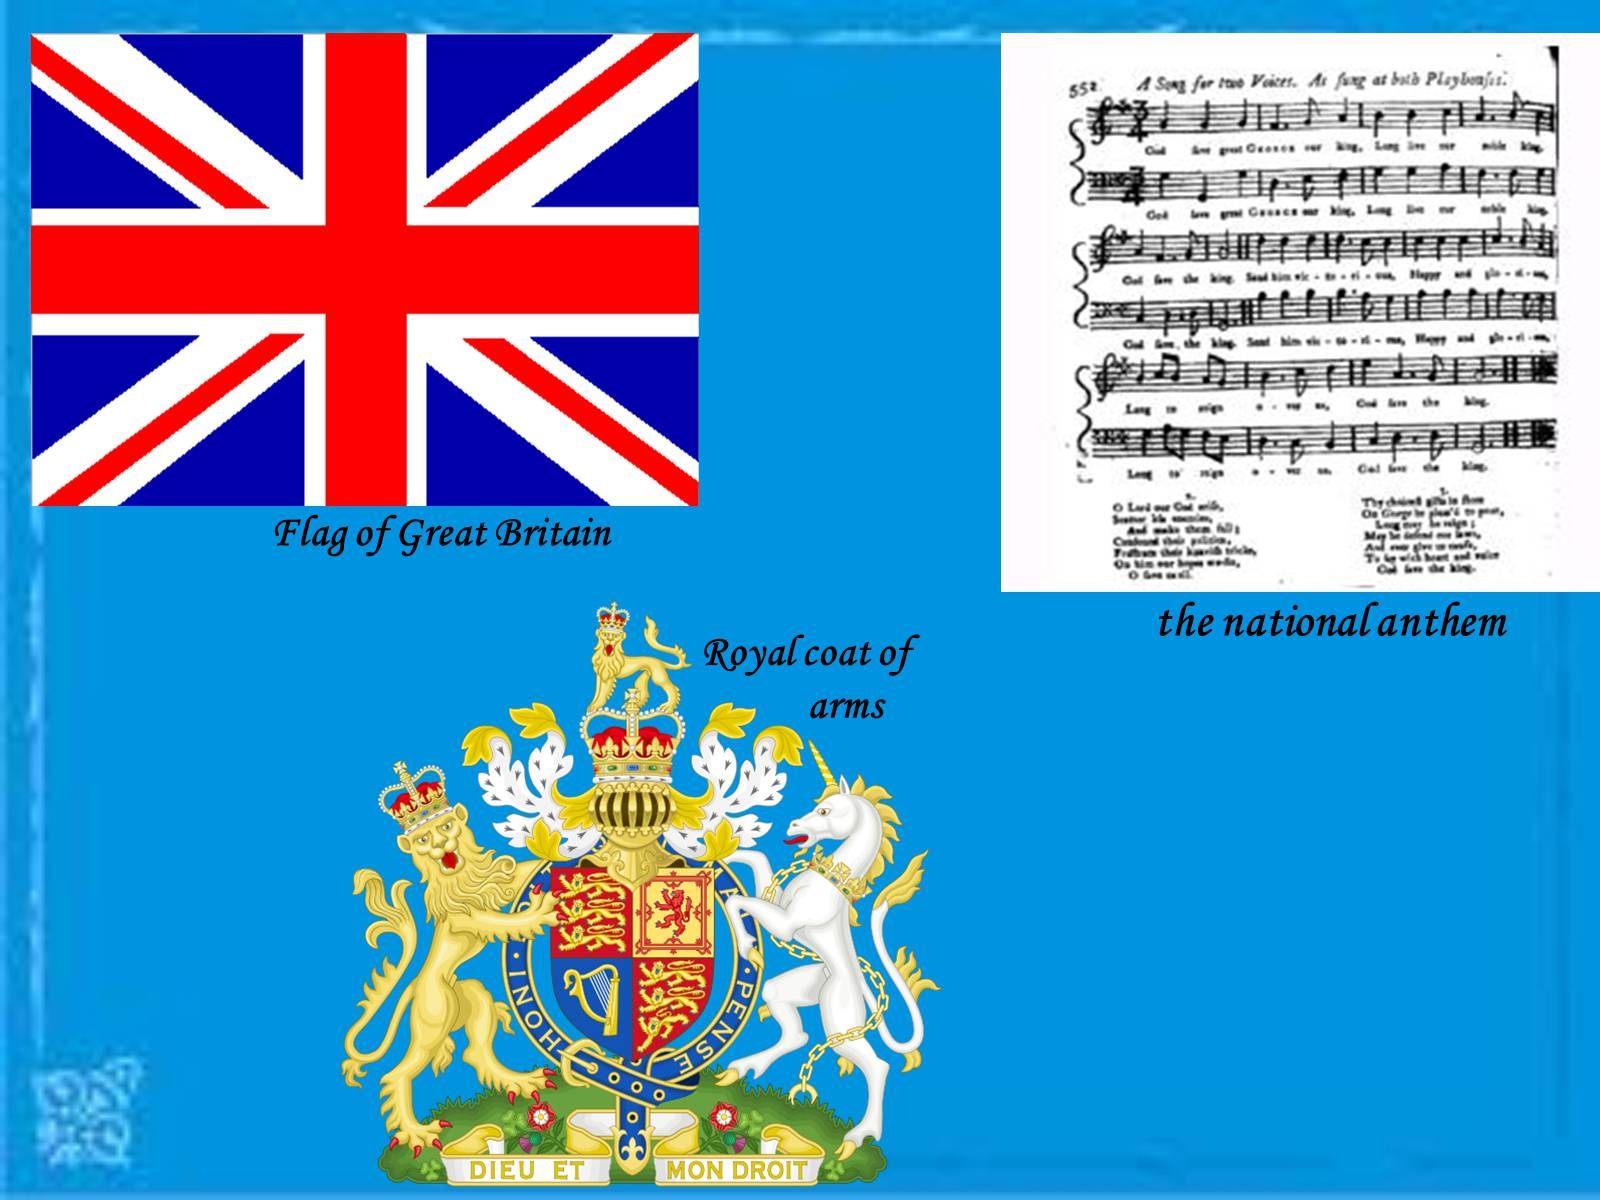 Презентація на тему «The United Kingdom of Great Britain and Northern Ireland» (варіант 2) - Слайд #4